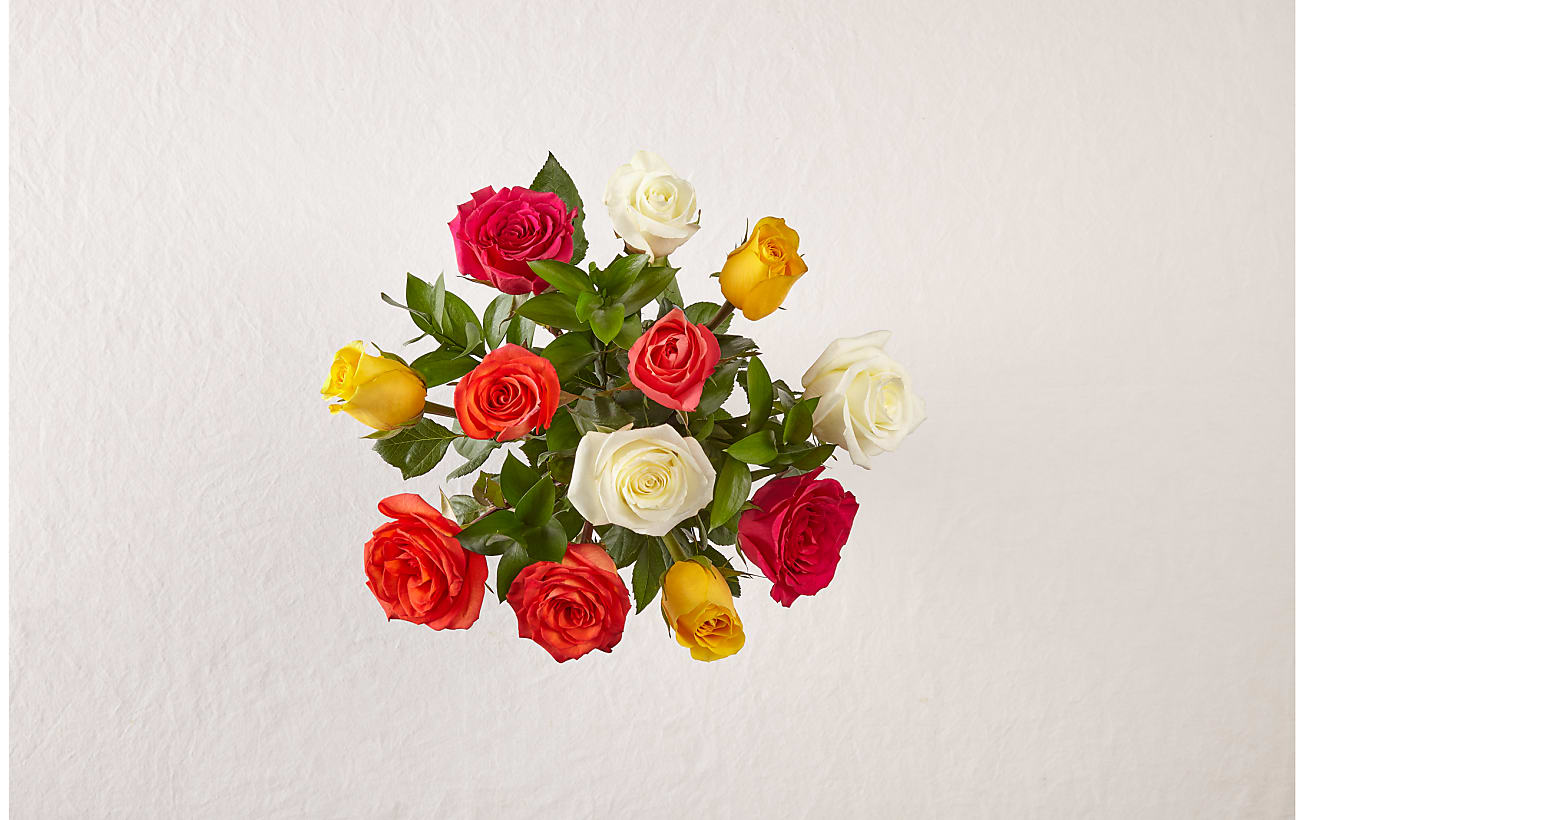 Mixed Roses - Image 3 Of 4